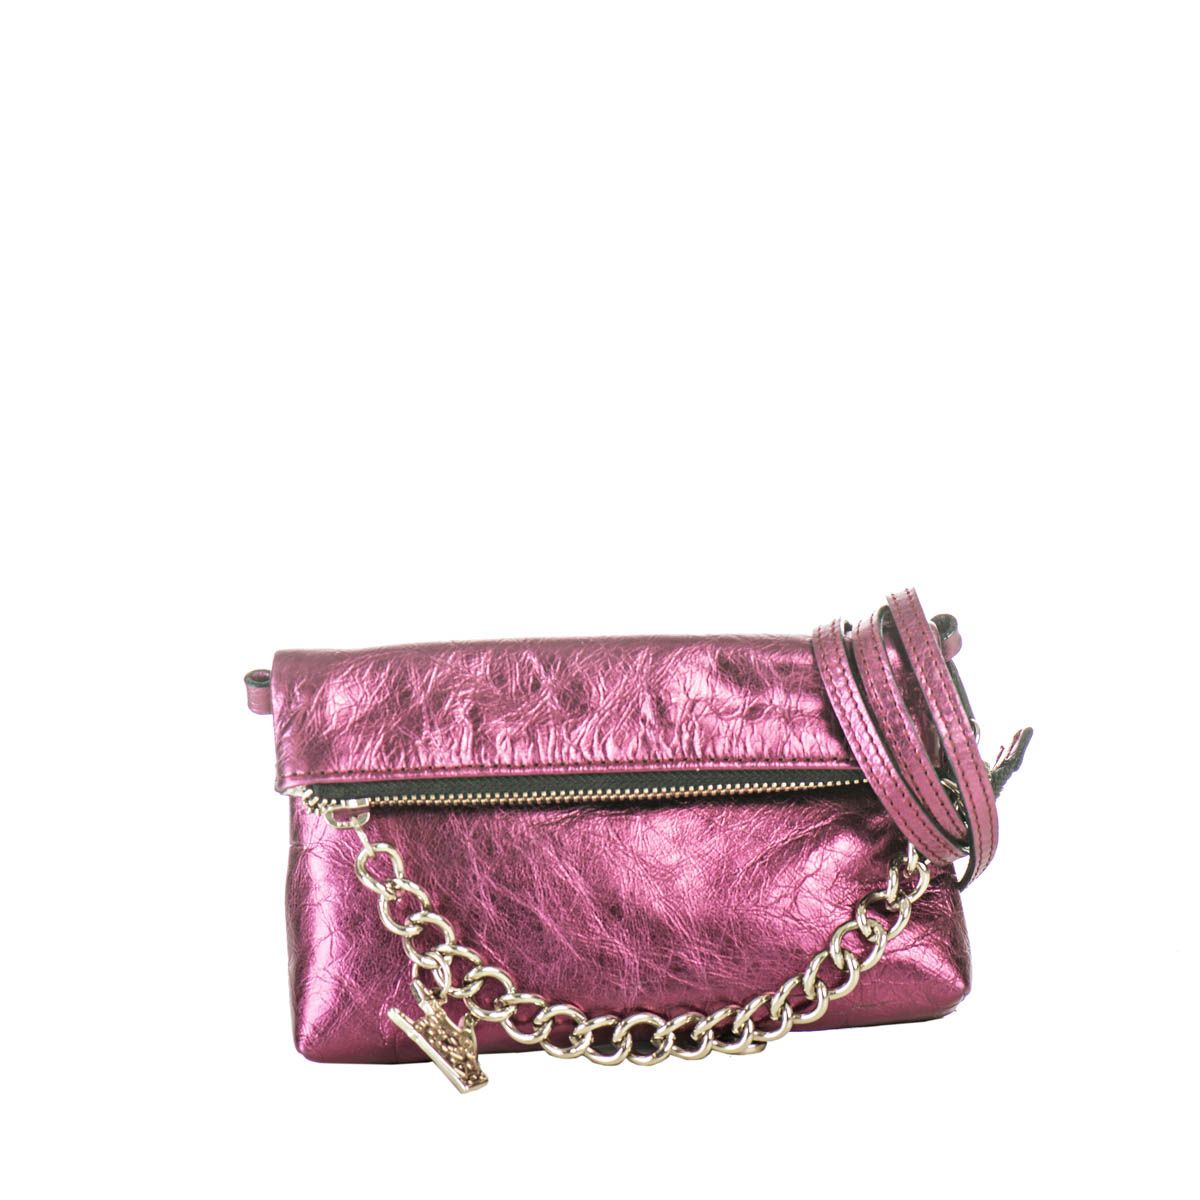 Pr 252 Ne By Mili Schmoll Shop Now Bit Ly Zujnf5 Carteras